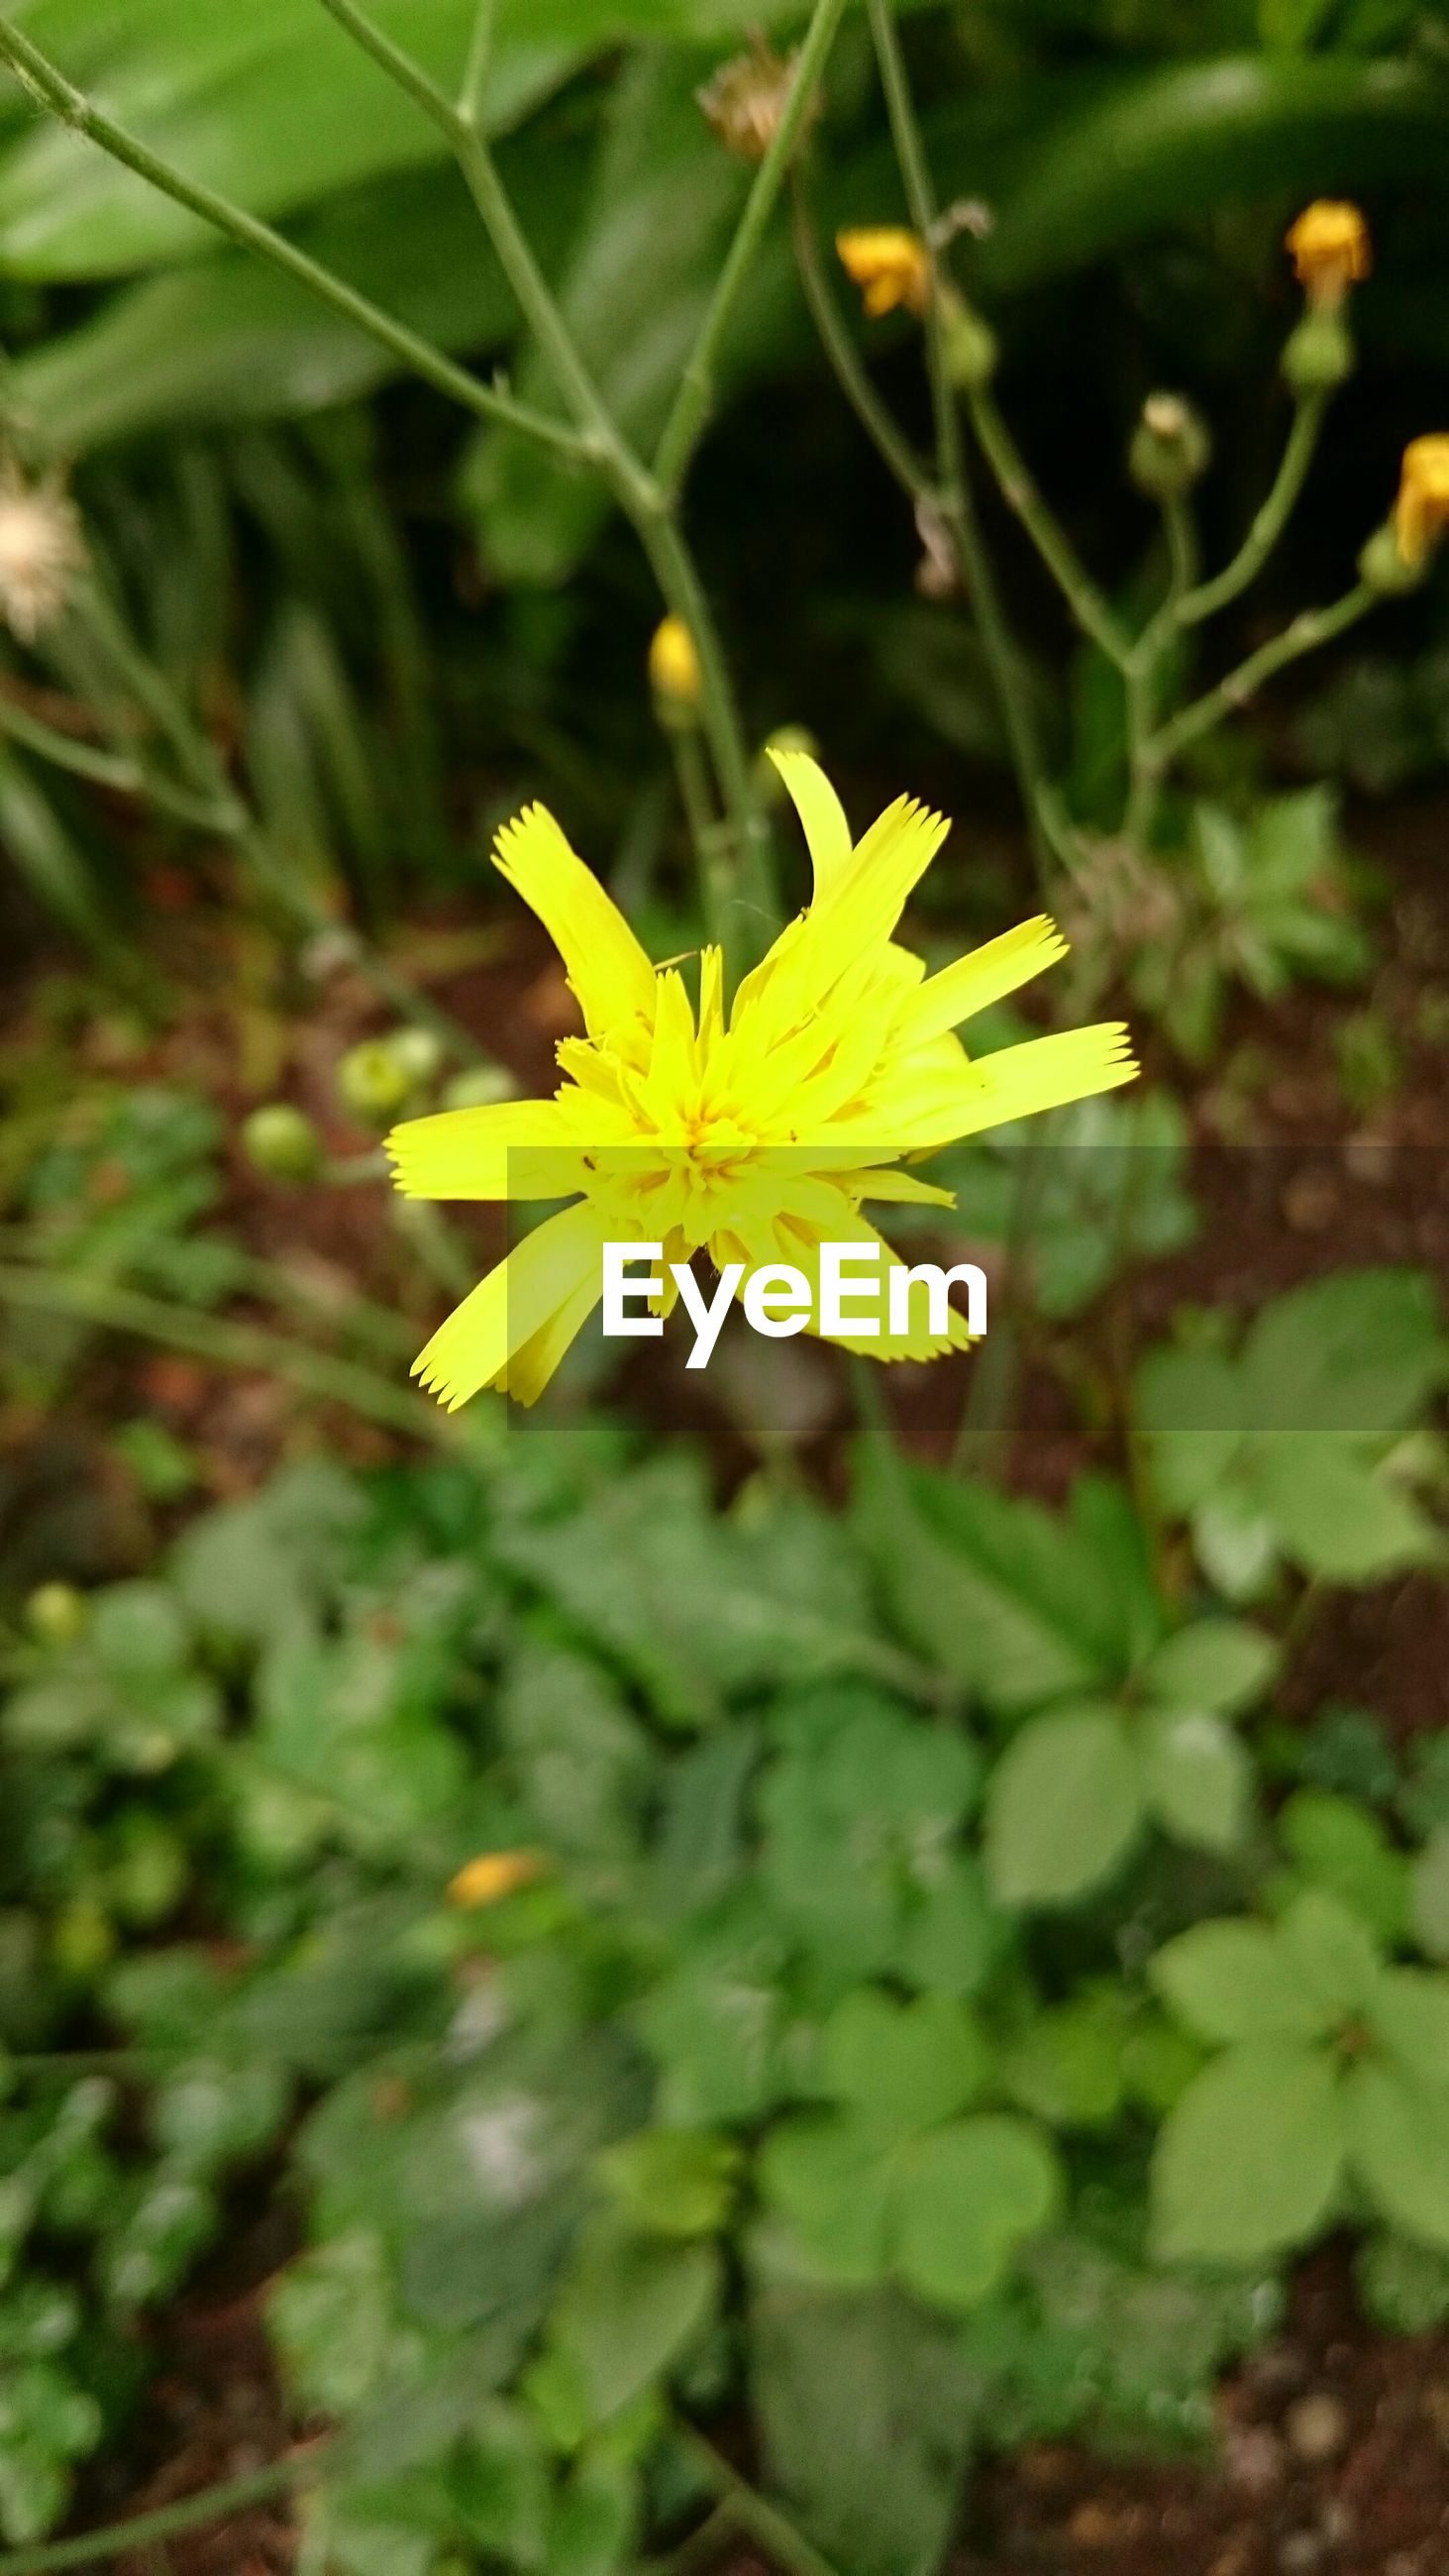 flower, yellow, petal, freshness, fragility, growth, beauty in nature, focus on foreground, flower head, nature, close-up, single flower, plant, blooming, outdoors, day, insect, leaf, selective focus, no people